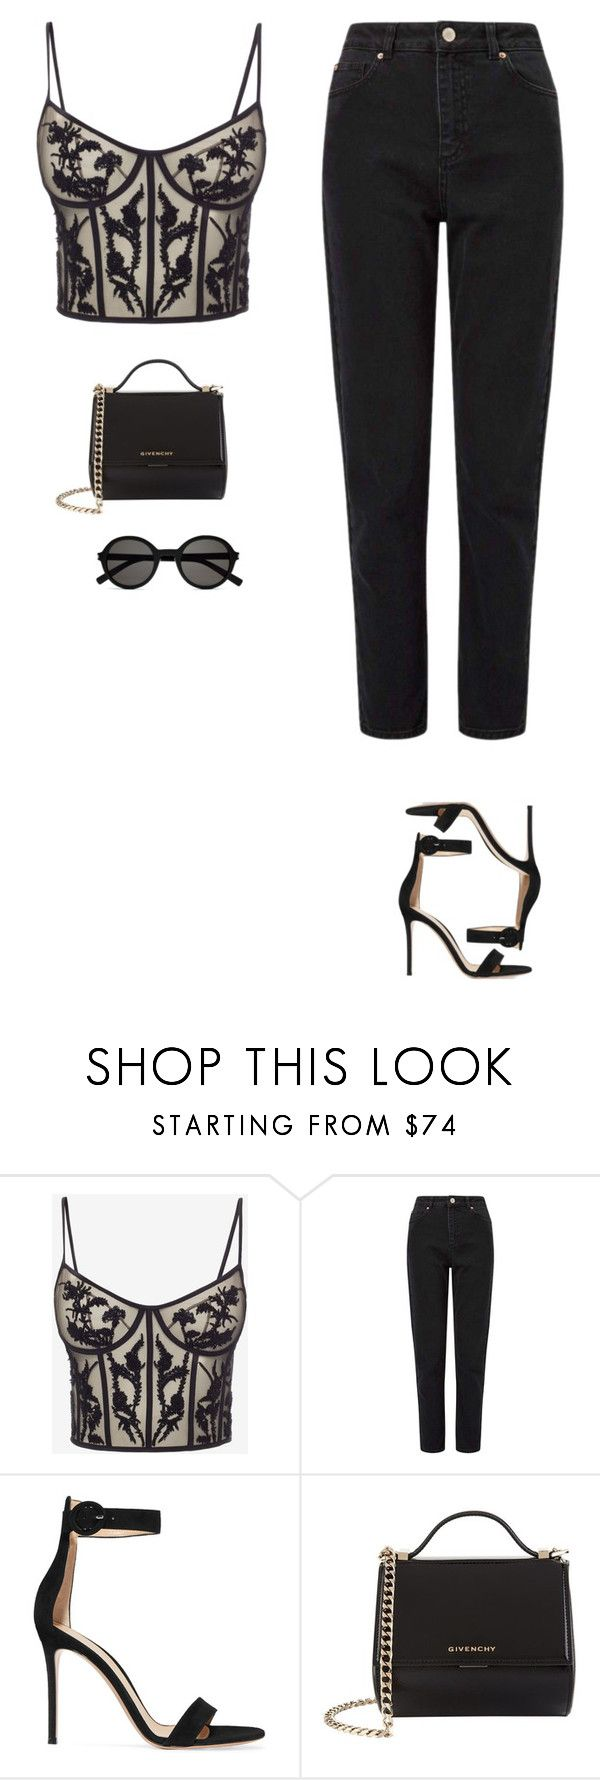 """Untitled #289"" by xoxotiffvni on Polyvore featuring Alexander McQueen, Miss Sel…"